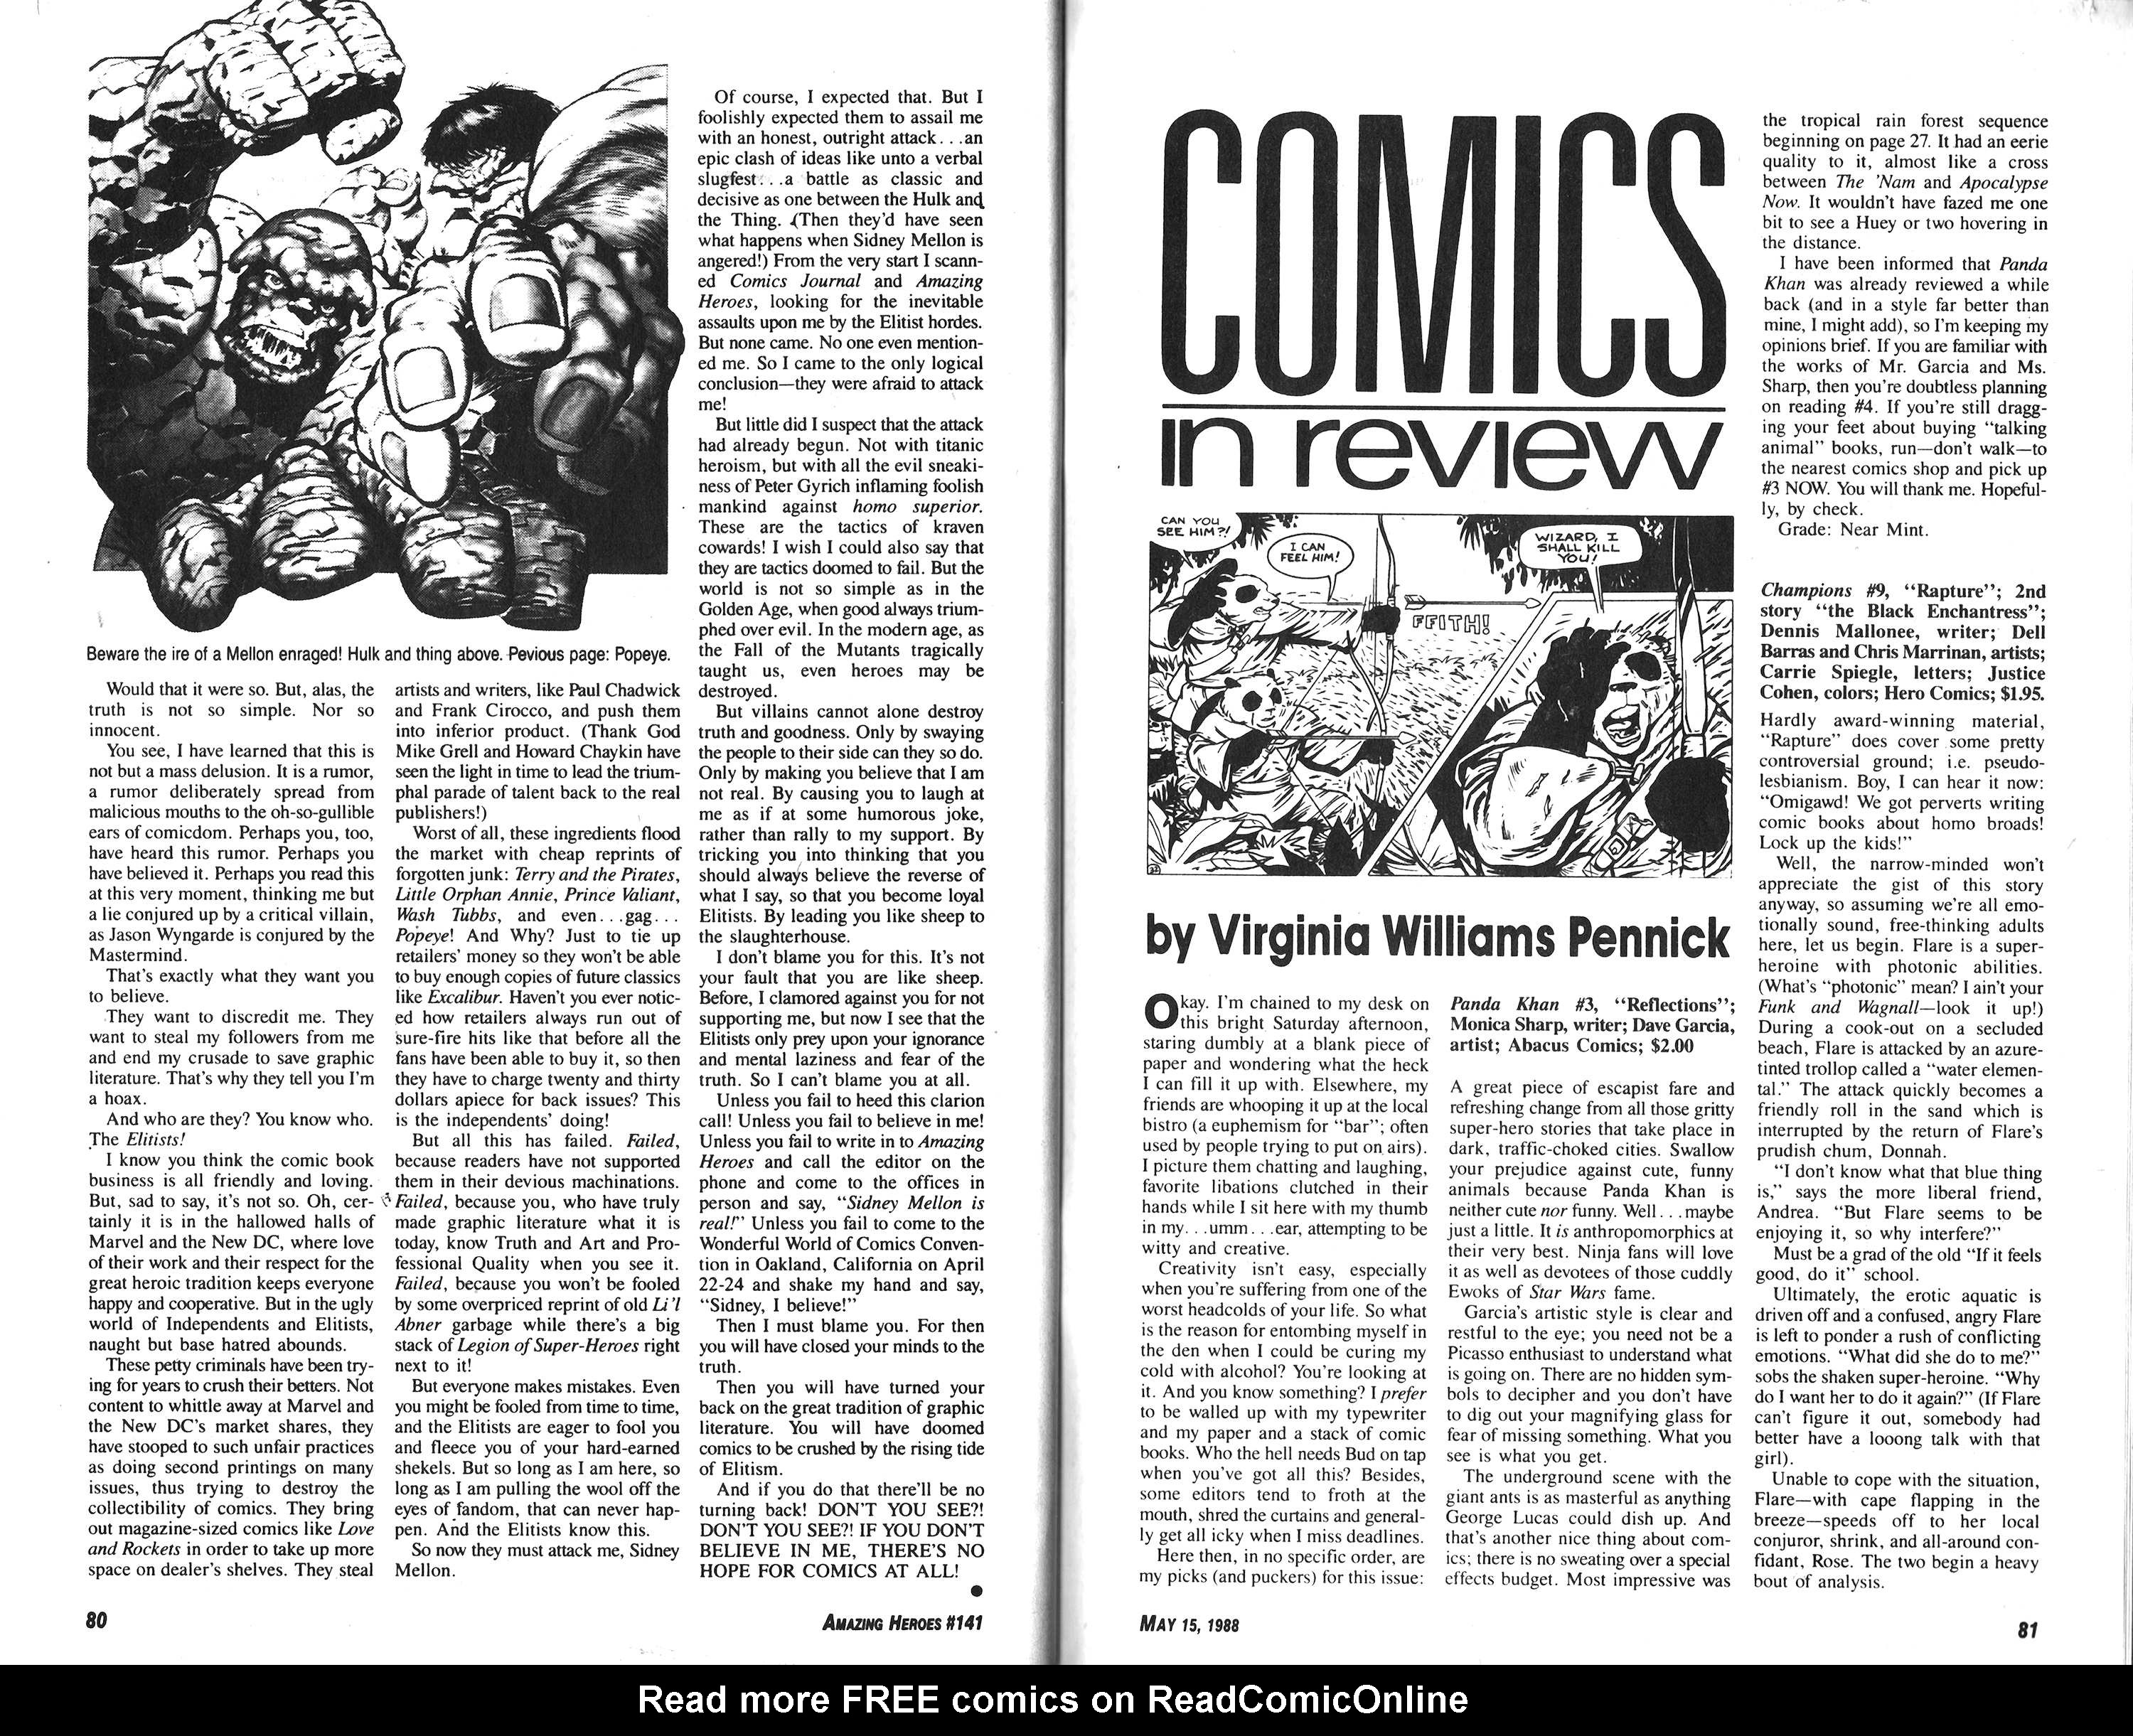 Read online Amazing Heroes comic -  Issue #141 - 41